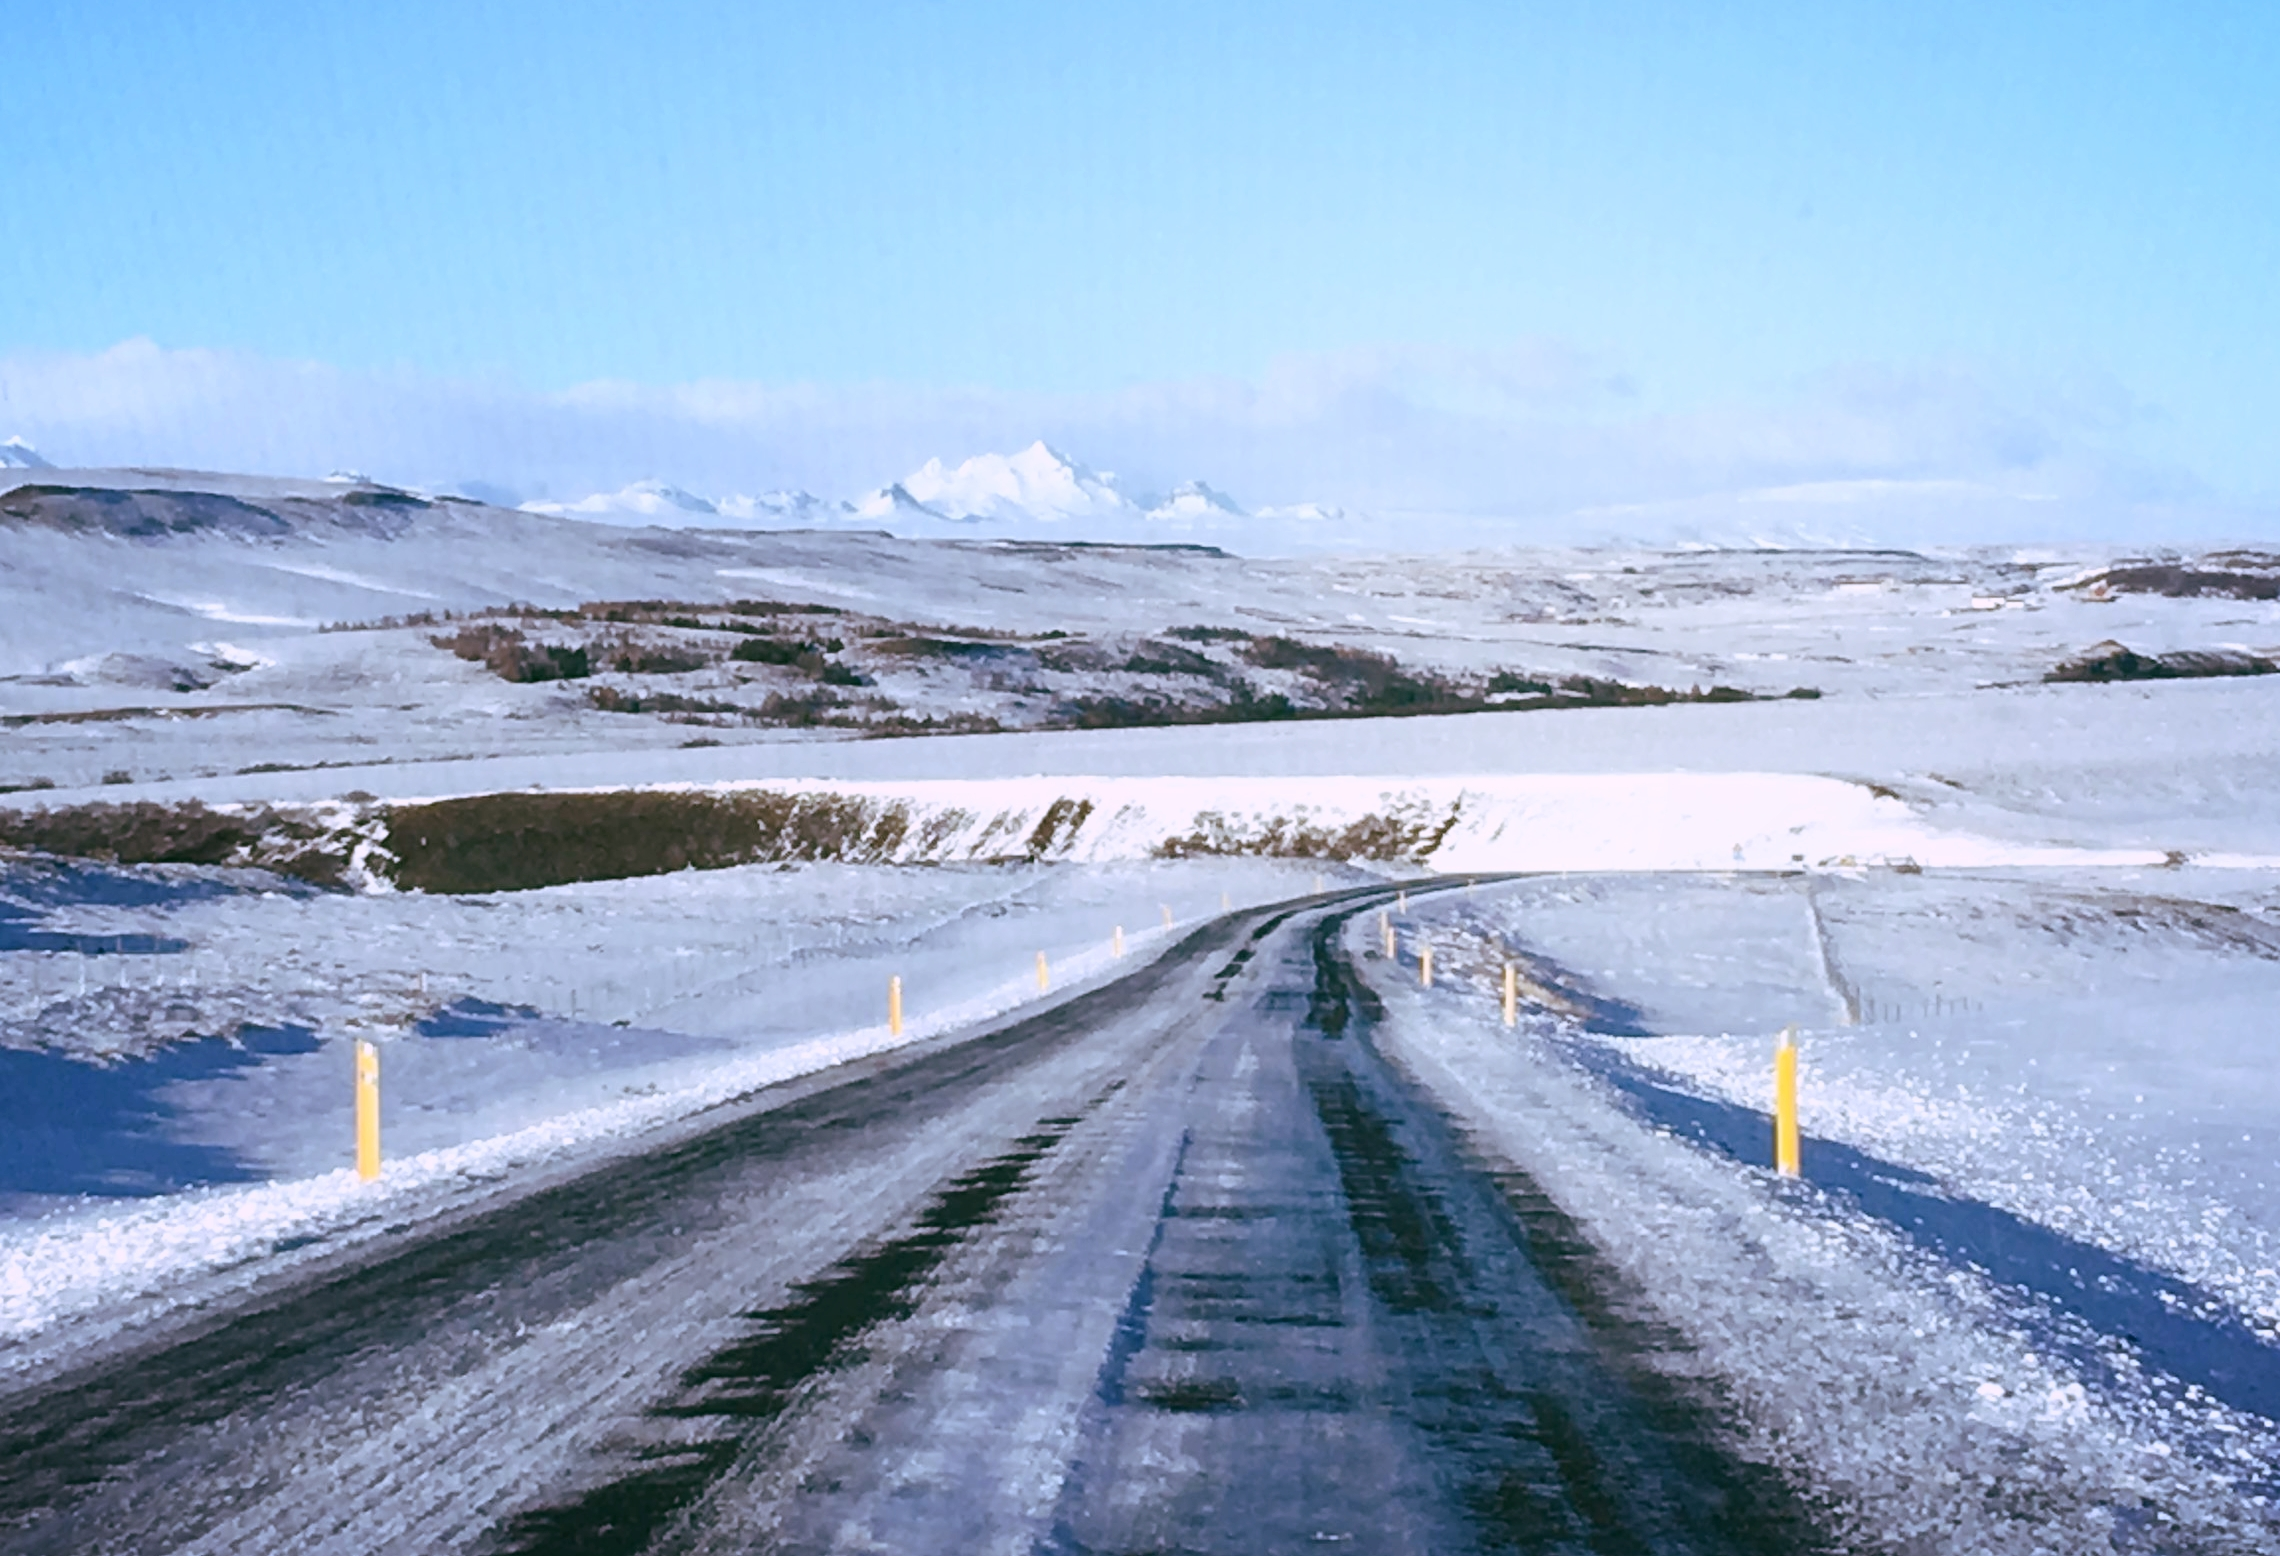 Somewhere between Reykjavik and the Secret Lagoon. Thank goodness we were upgraded to 4-wheel drive!